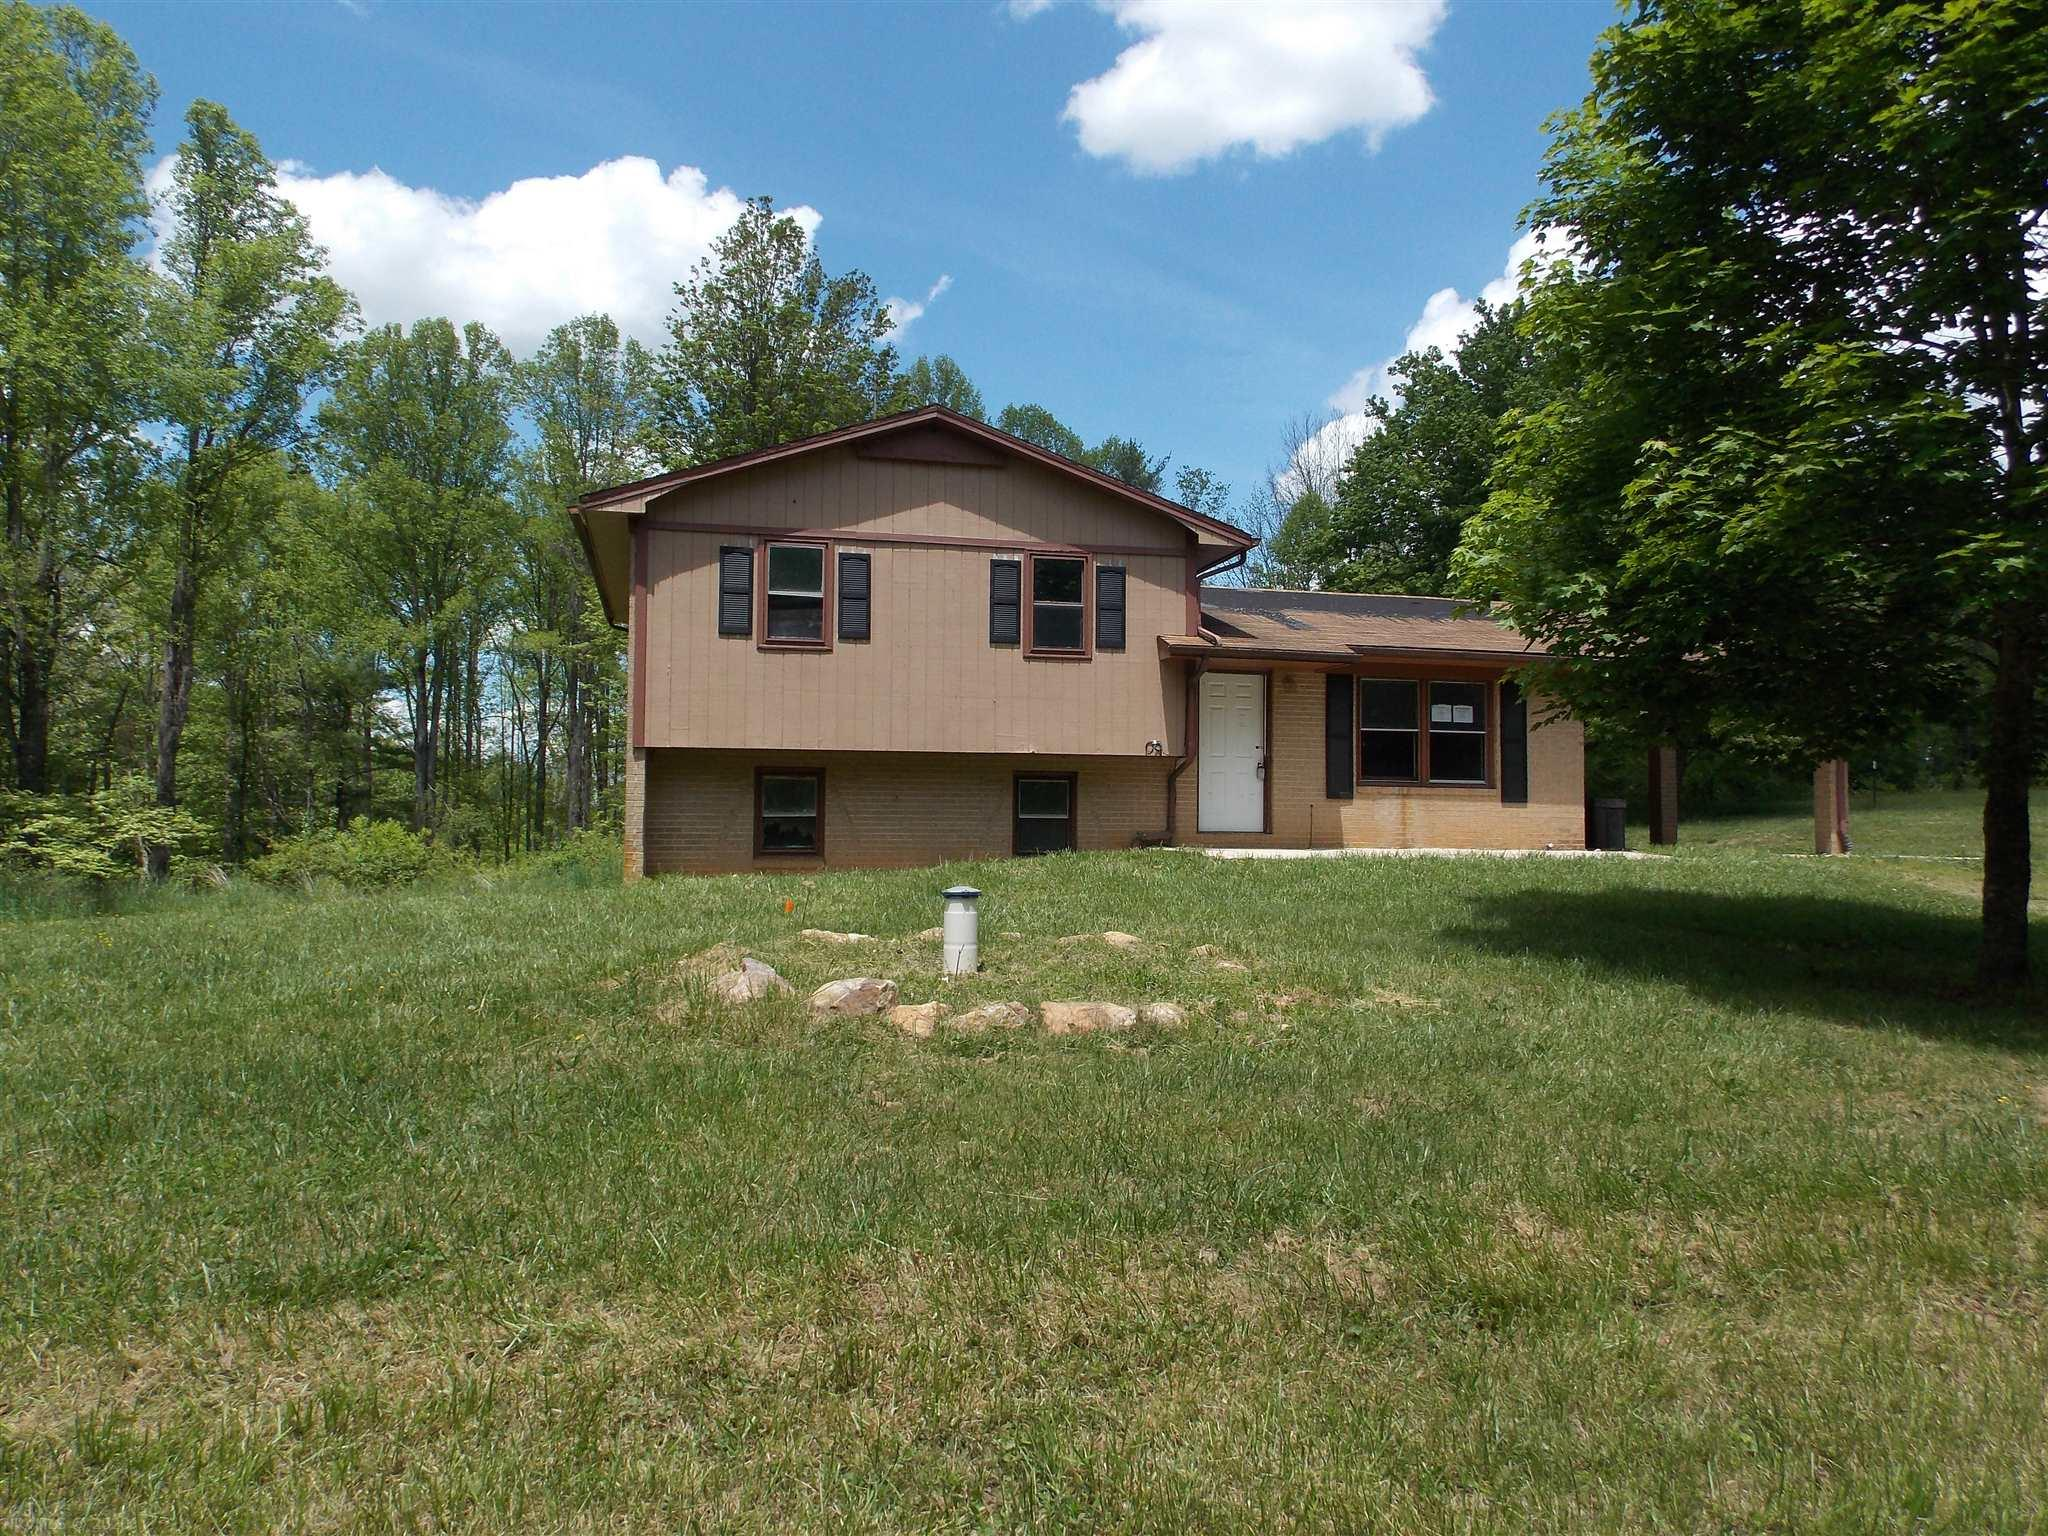 Privacy! Seclusion!!! Come see this home in the country. Get away from it all!! This split level has large rooms, a big back and front yard and a carport. It will make someone a great place to call home! See for yourself and see yourself home!!